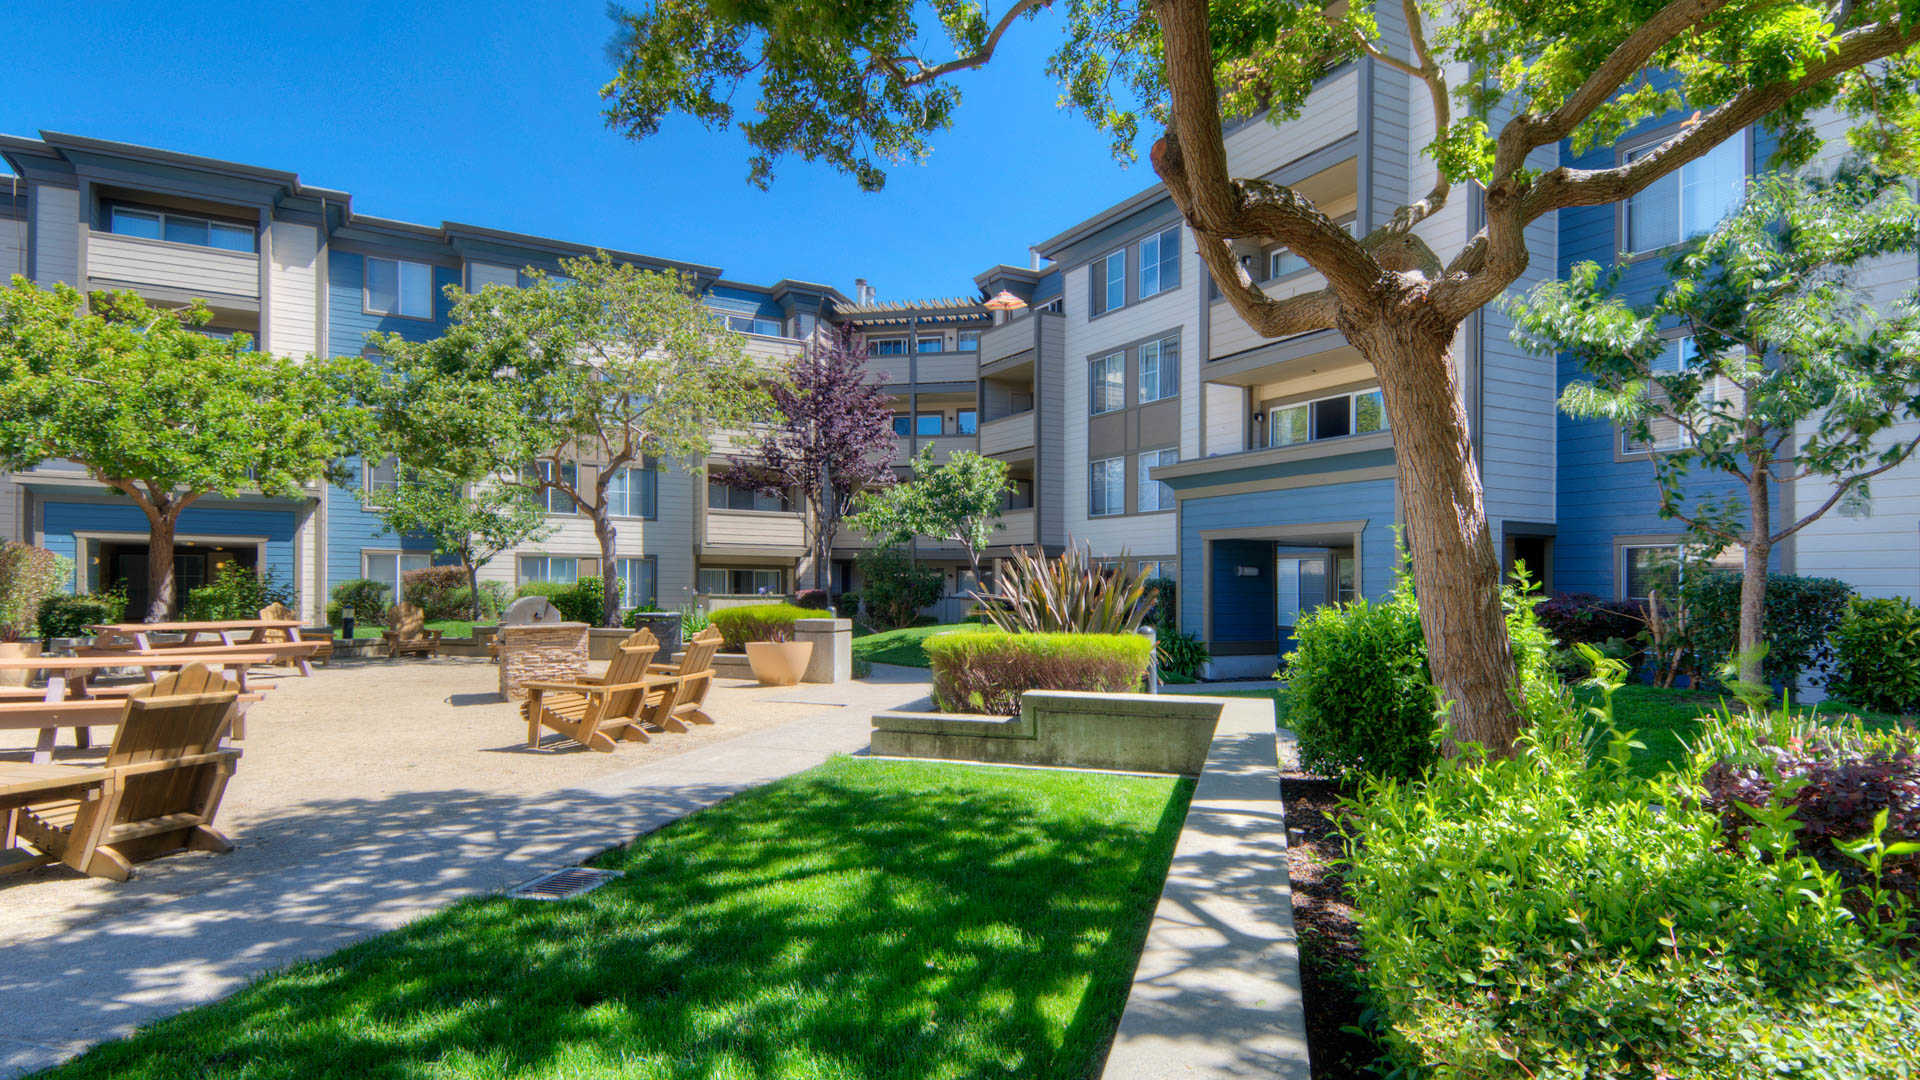 artistry-emeryville-apartments-courtyard.jpg